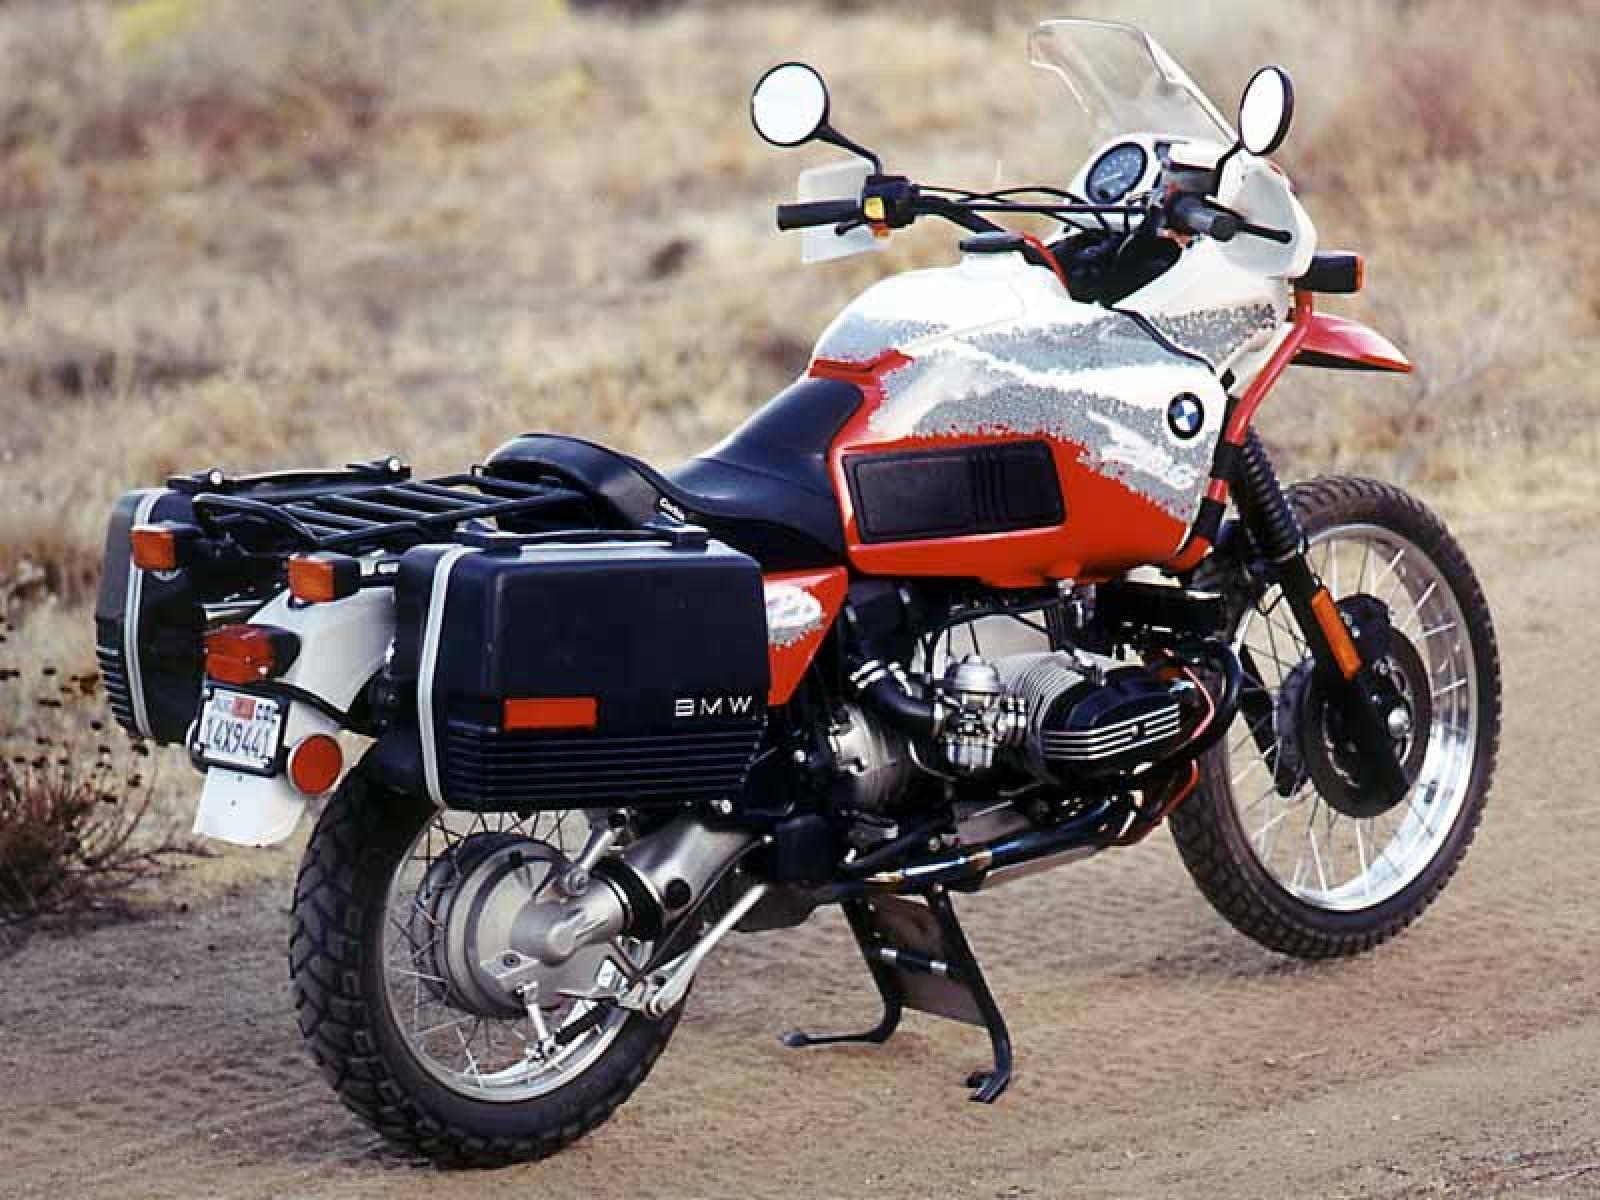 BMW R100GS Paris-Dakar images #7531